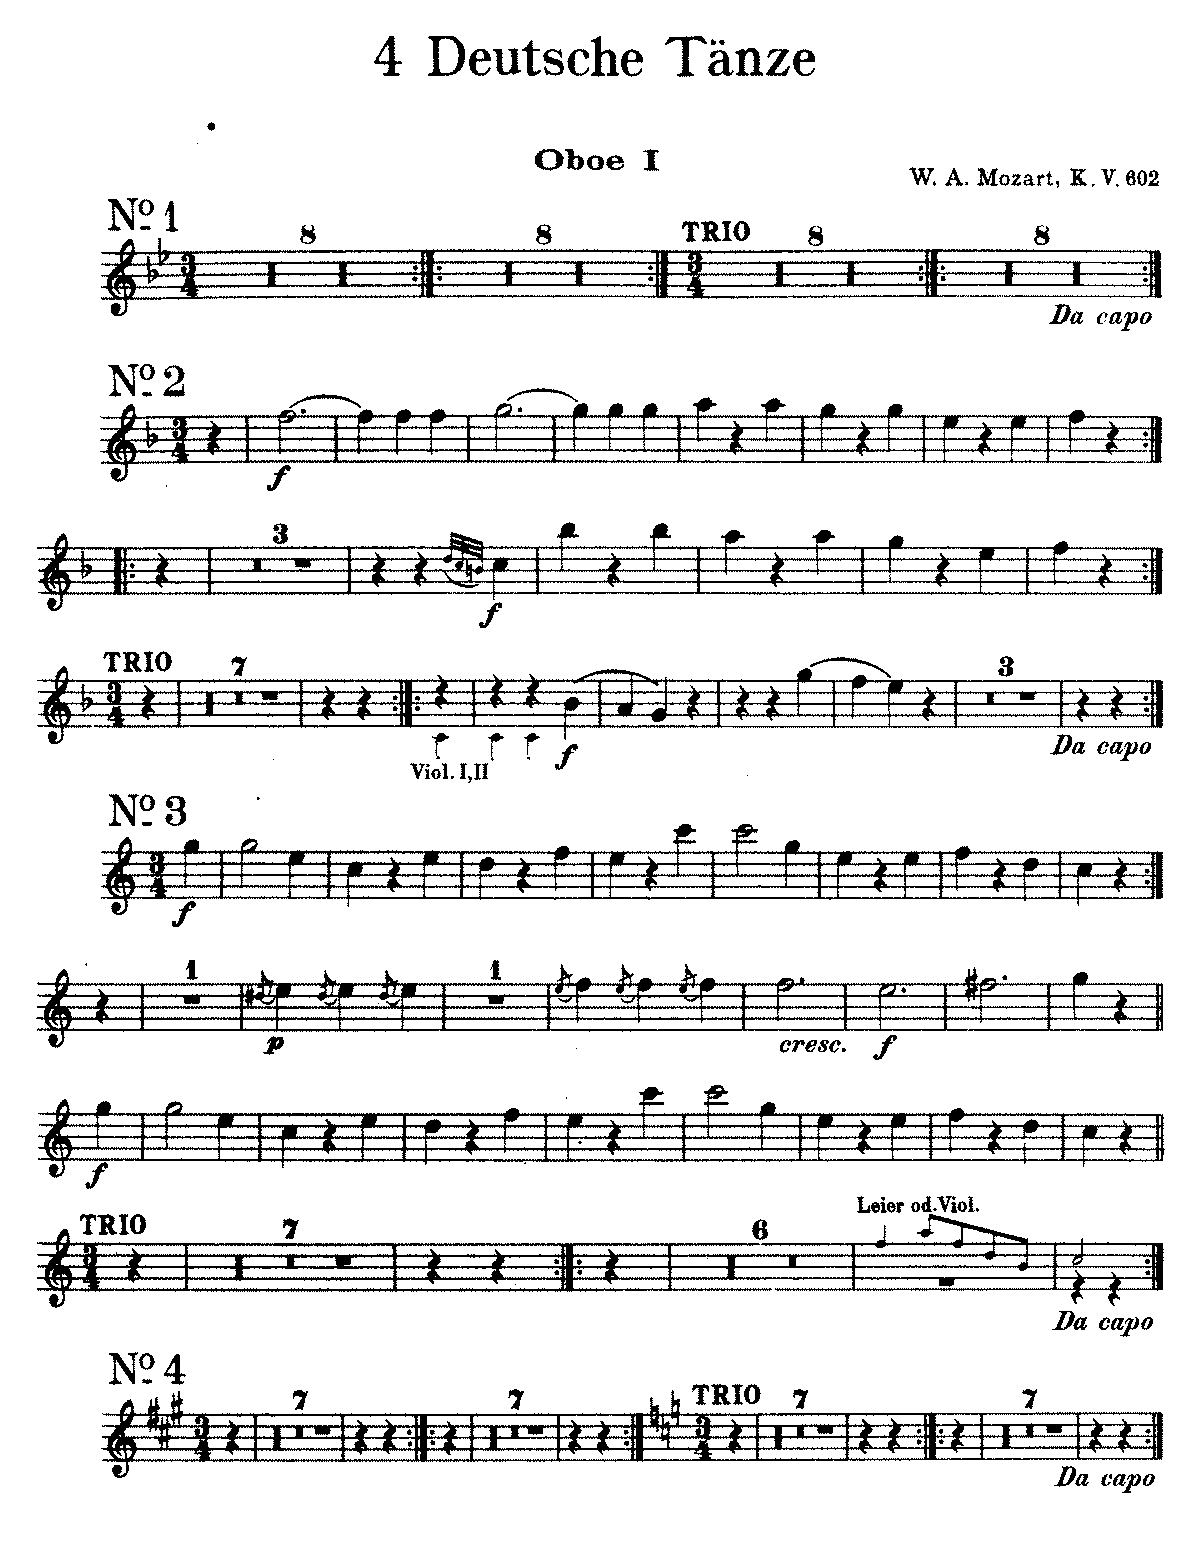 PMLP56303-Mozart 4German dances K602 Oboe1.pdf